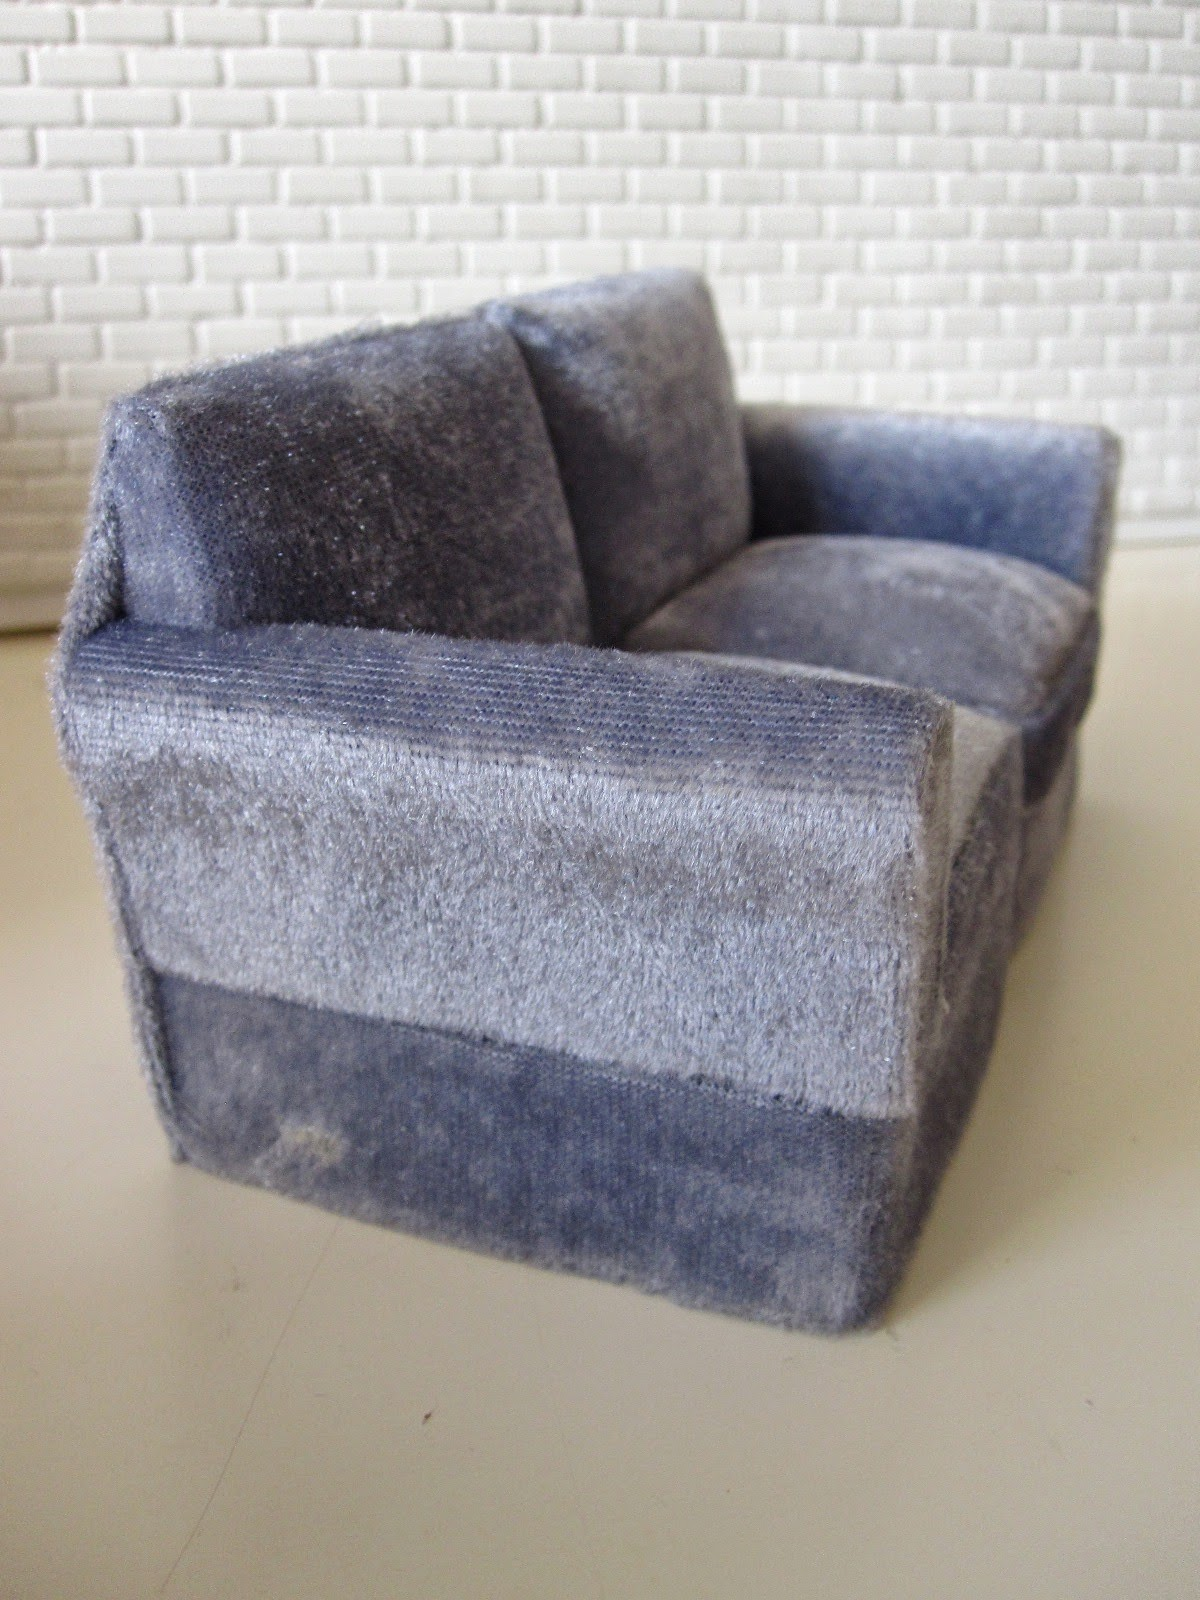 Modern miniature two seater grey velvet sofa.